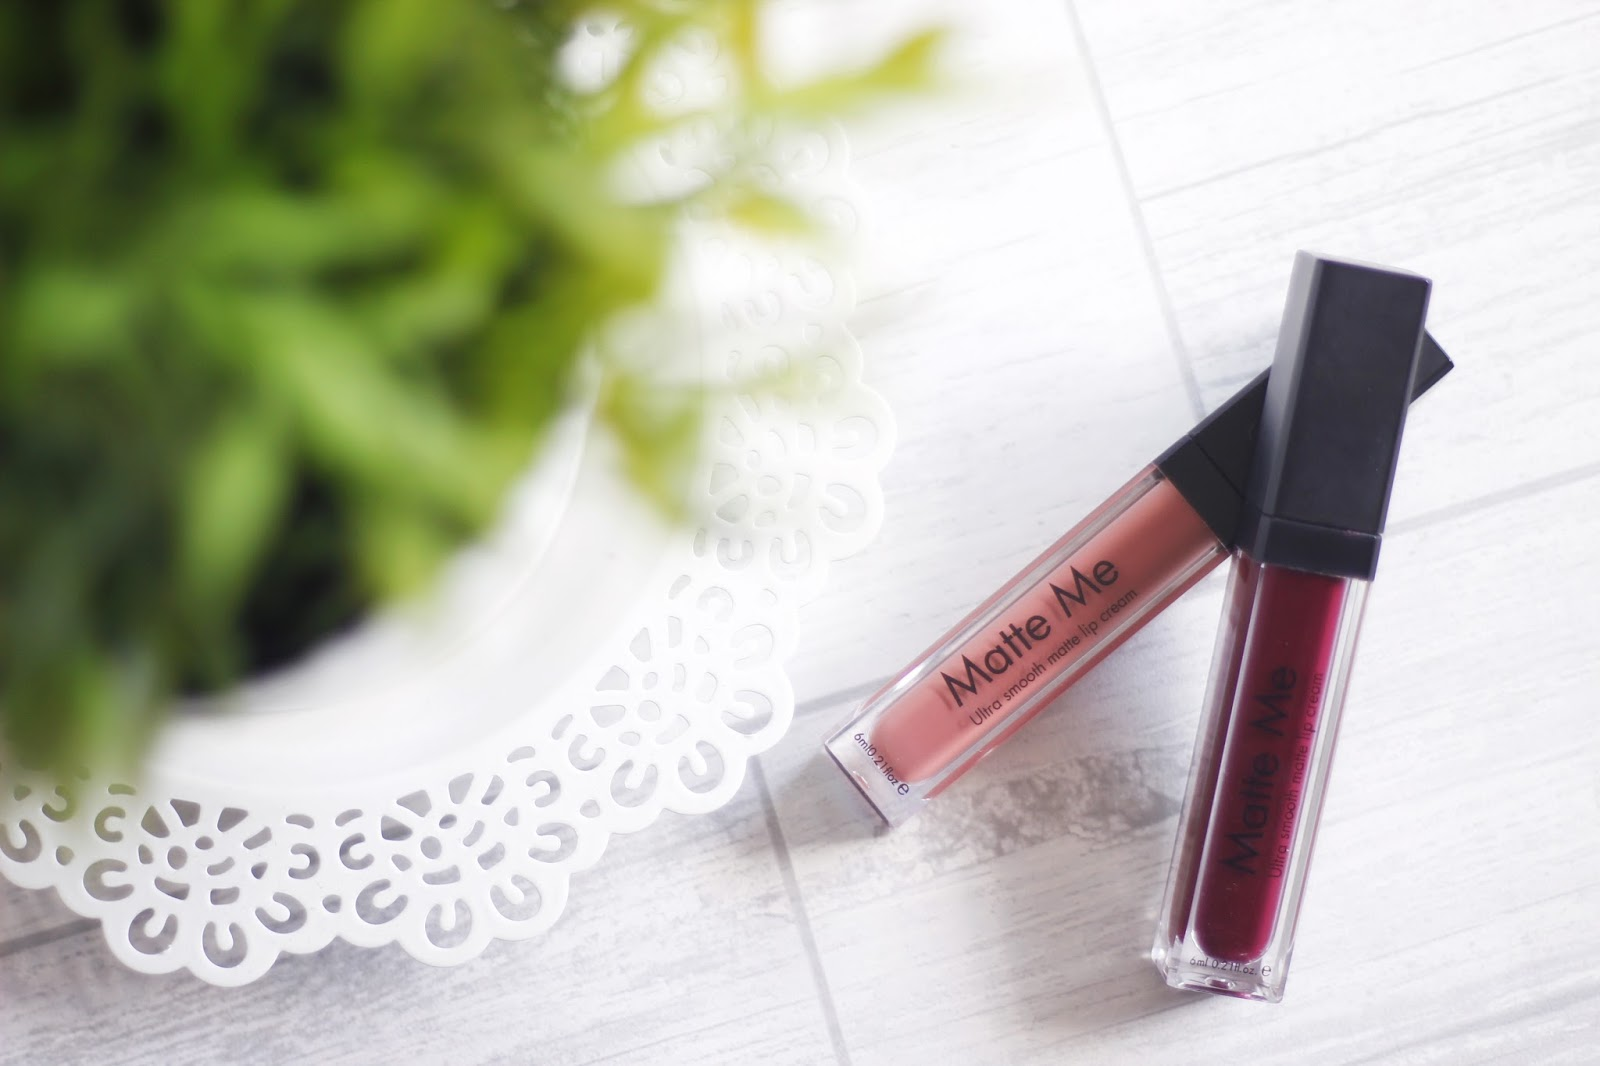 See The Stars - Sleek Matte Lip Cream Review